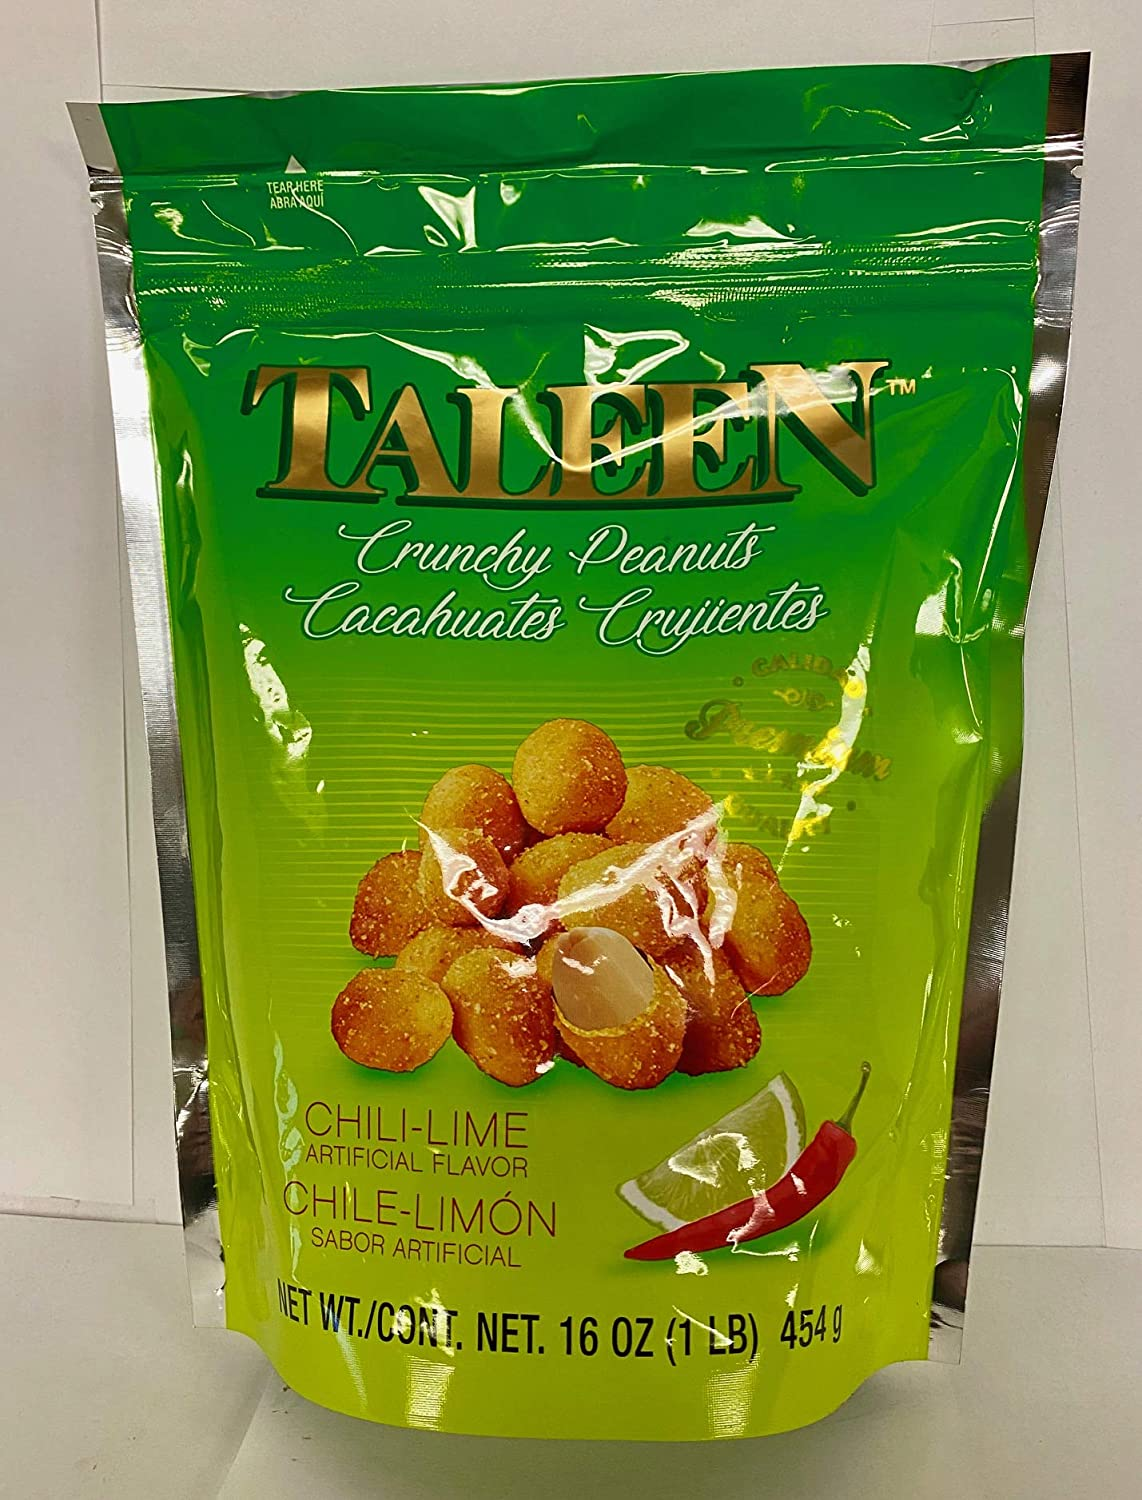 Taleen specialty shop Crunchy Peanuts Chili Lime 454g Department store 1lb Bag Flavor